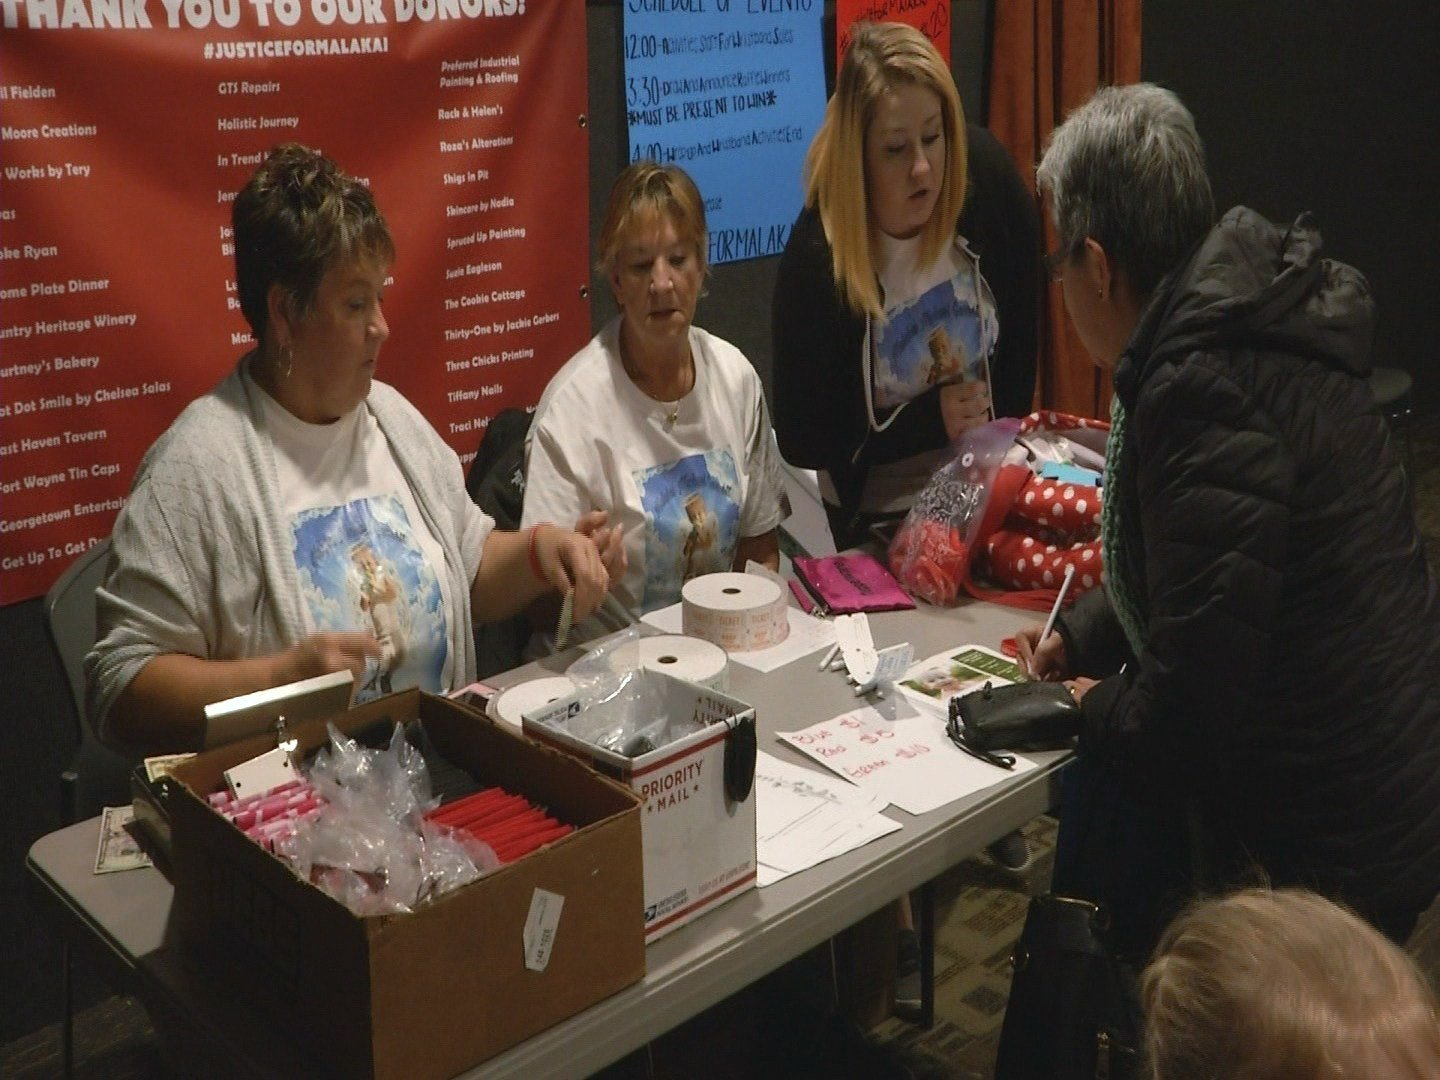 Event organizers sell raffle tickets with proceeds going to the Garrett family